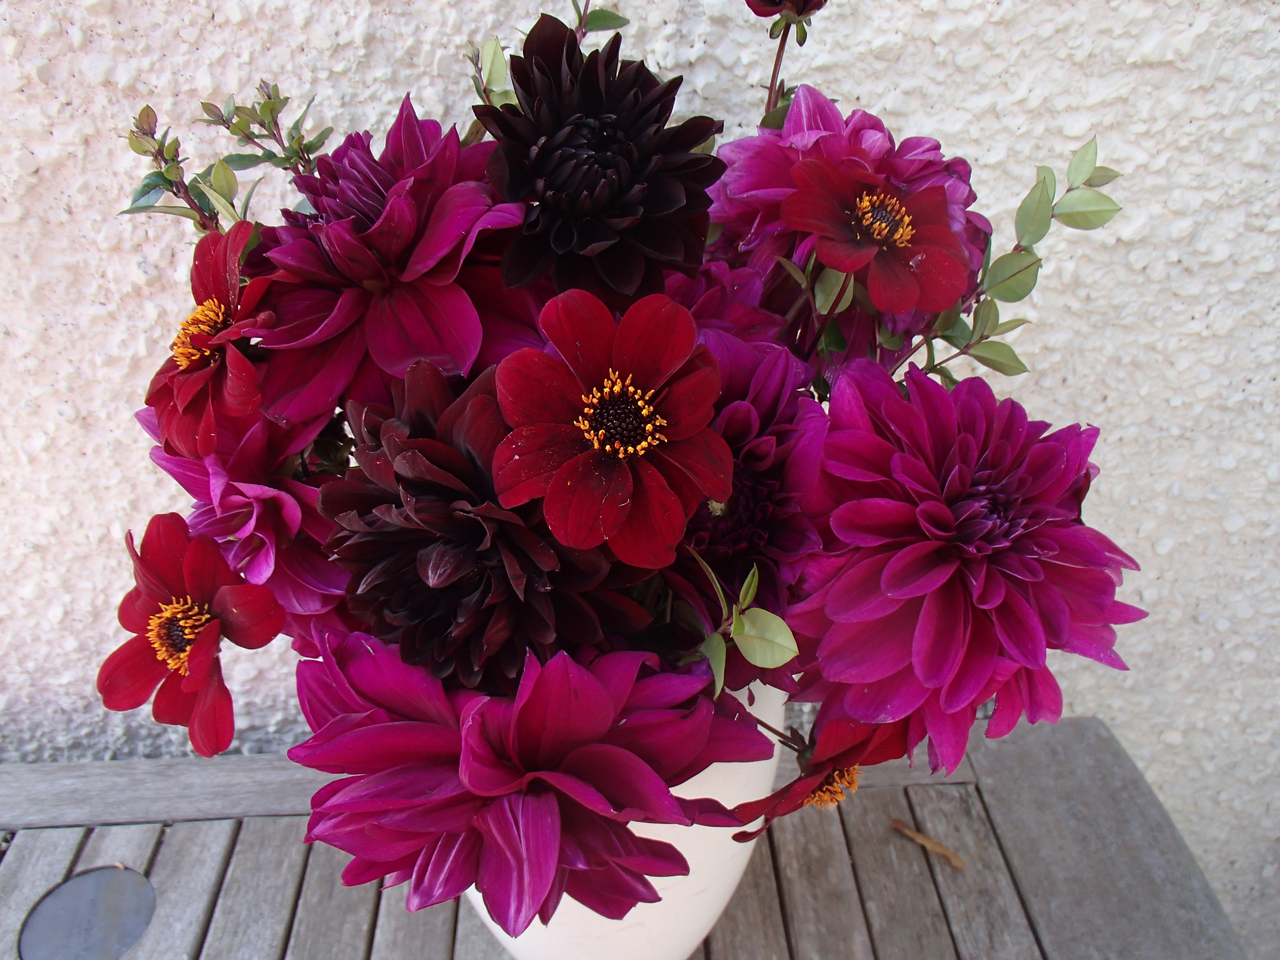 dahlias-looking-lovely